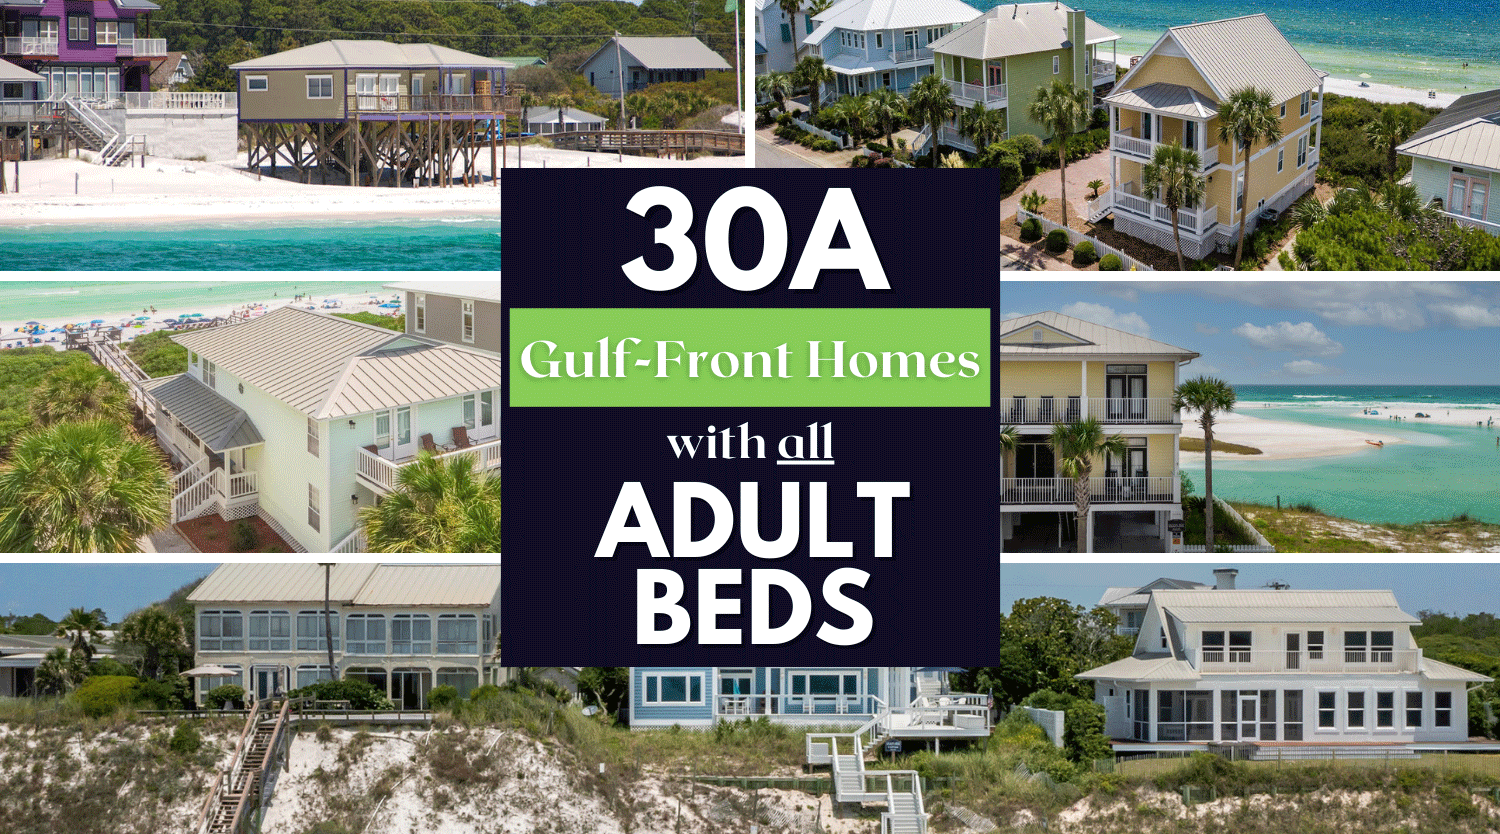 30A Gulf-Front Homes with All Adult Beds